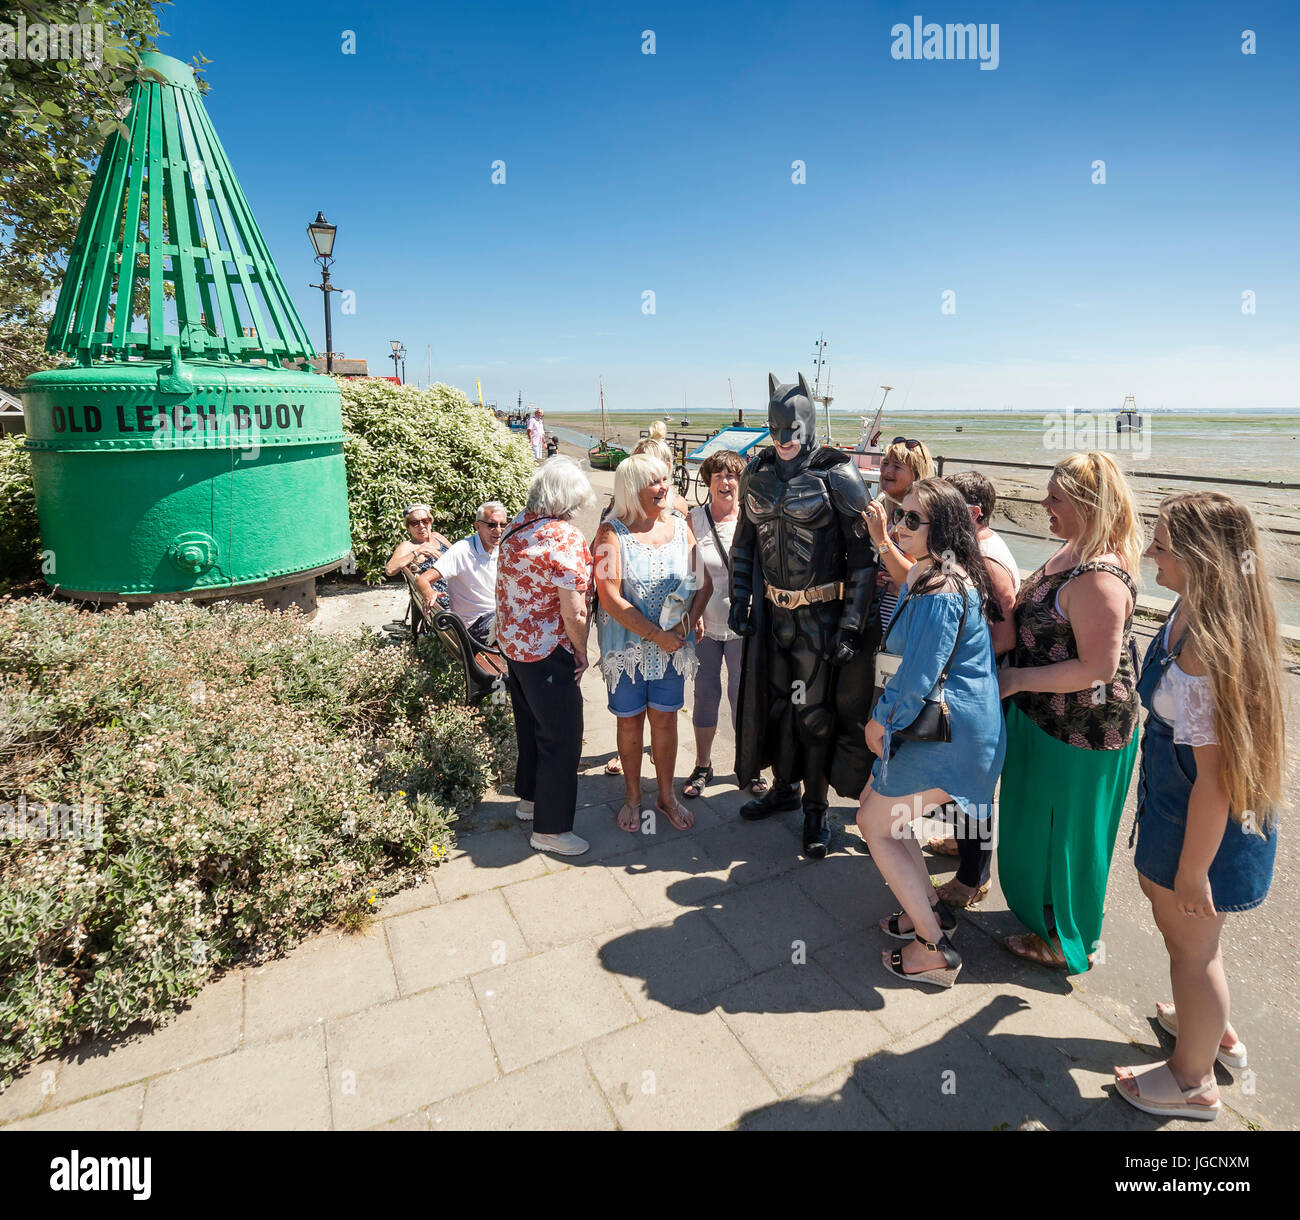 Leigh on Sea, Southend on Sea, Essex, Angleterre, Royaume-Uni. 5 juillet, 2017. Un homme habillé en costume Photo Stock